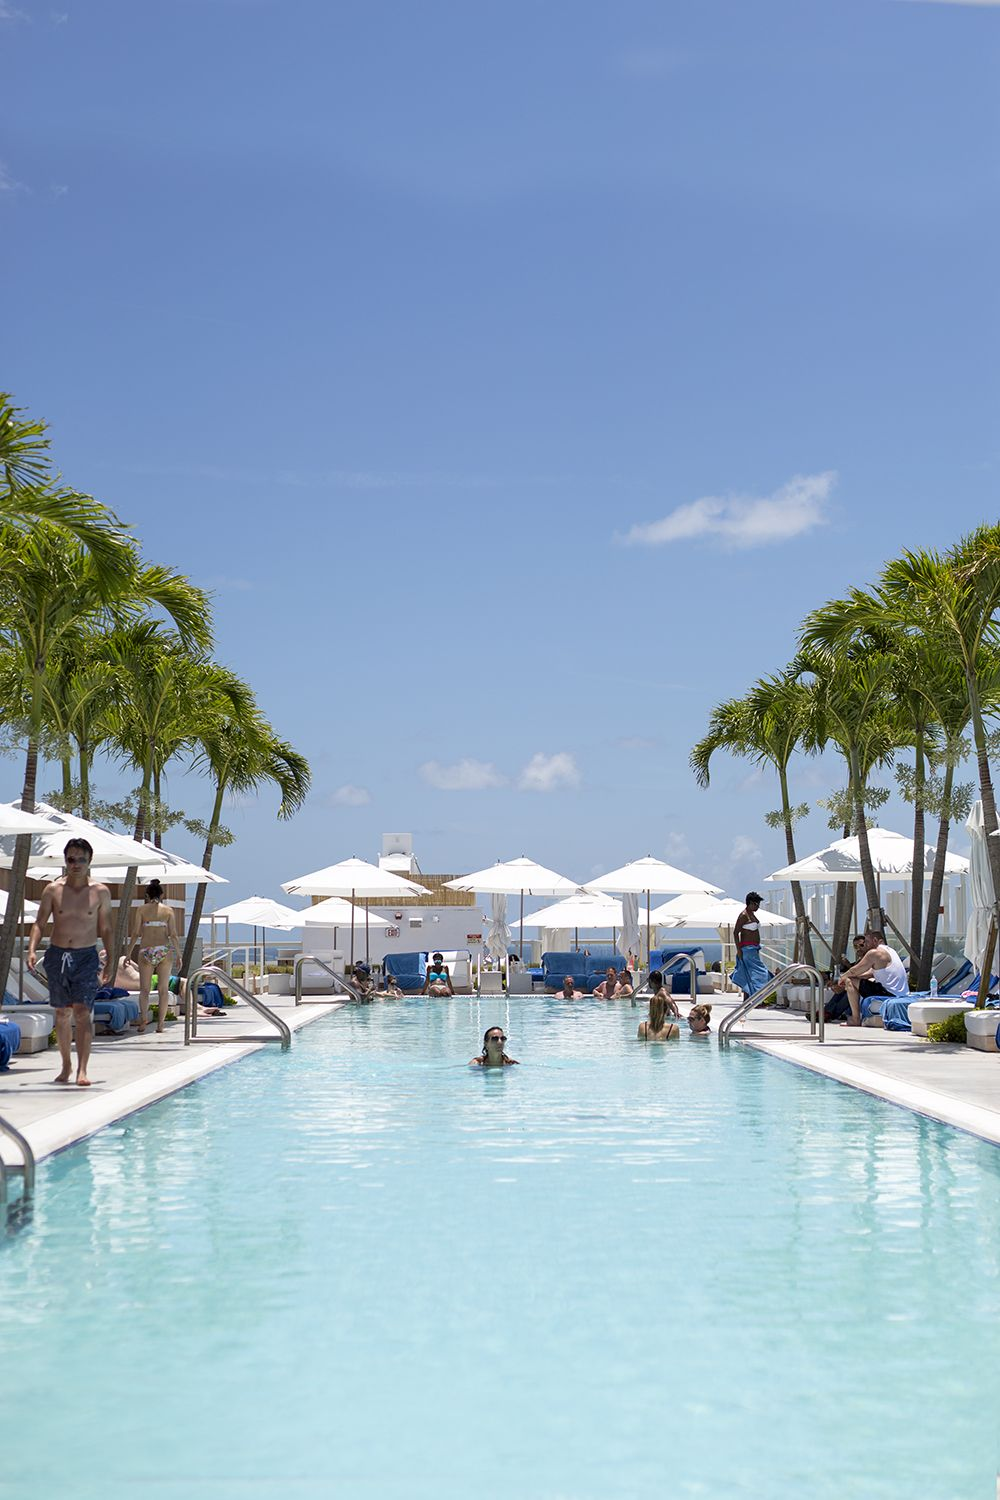 Top 10 Things To Do In Miami South Beach Hotels Beach Hotels South Beach Miami